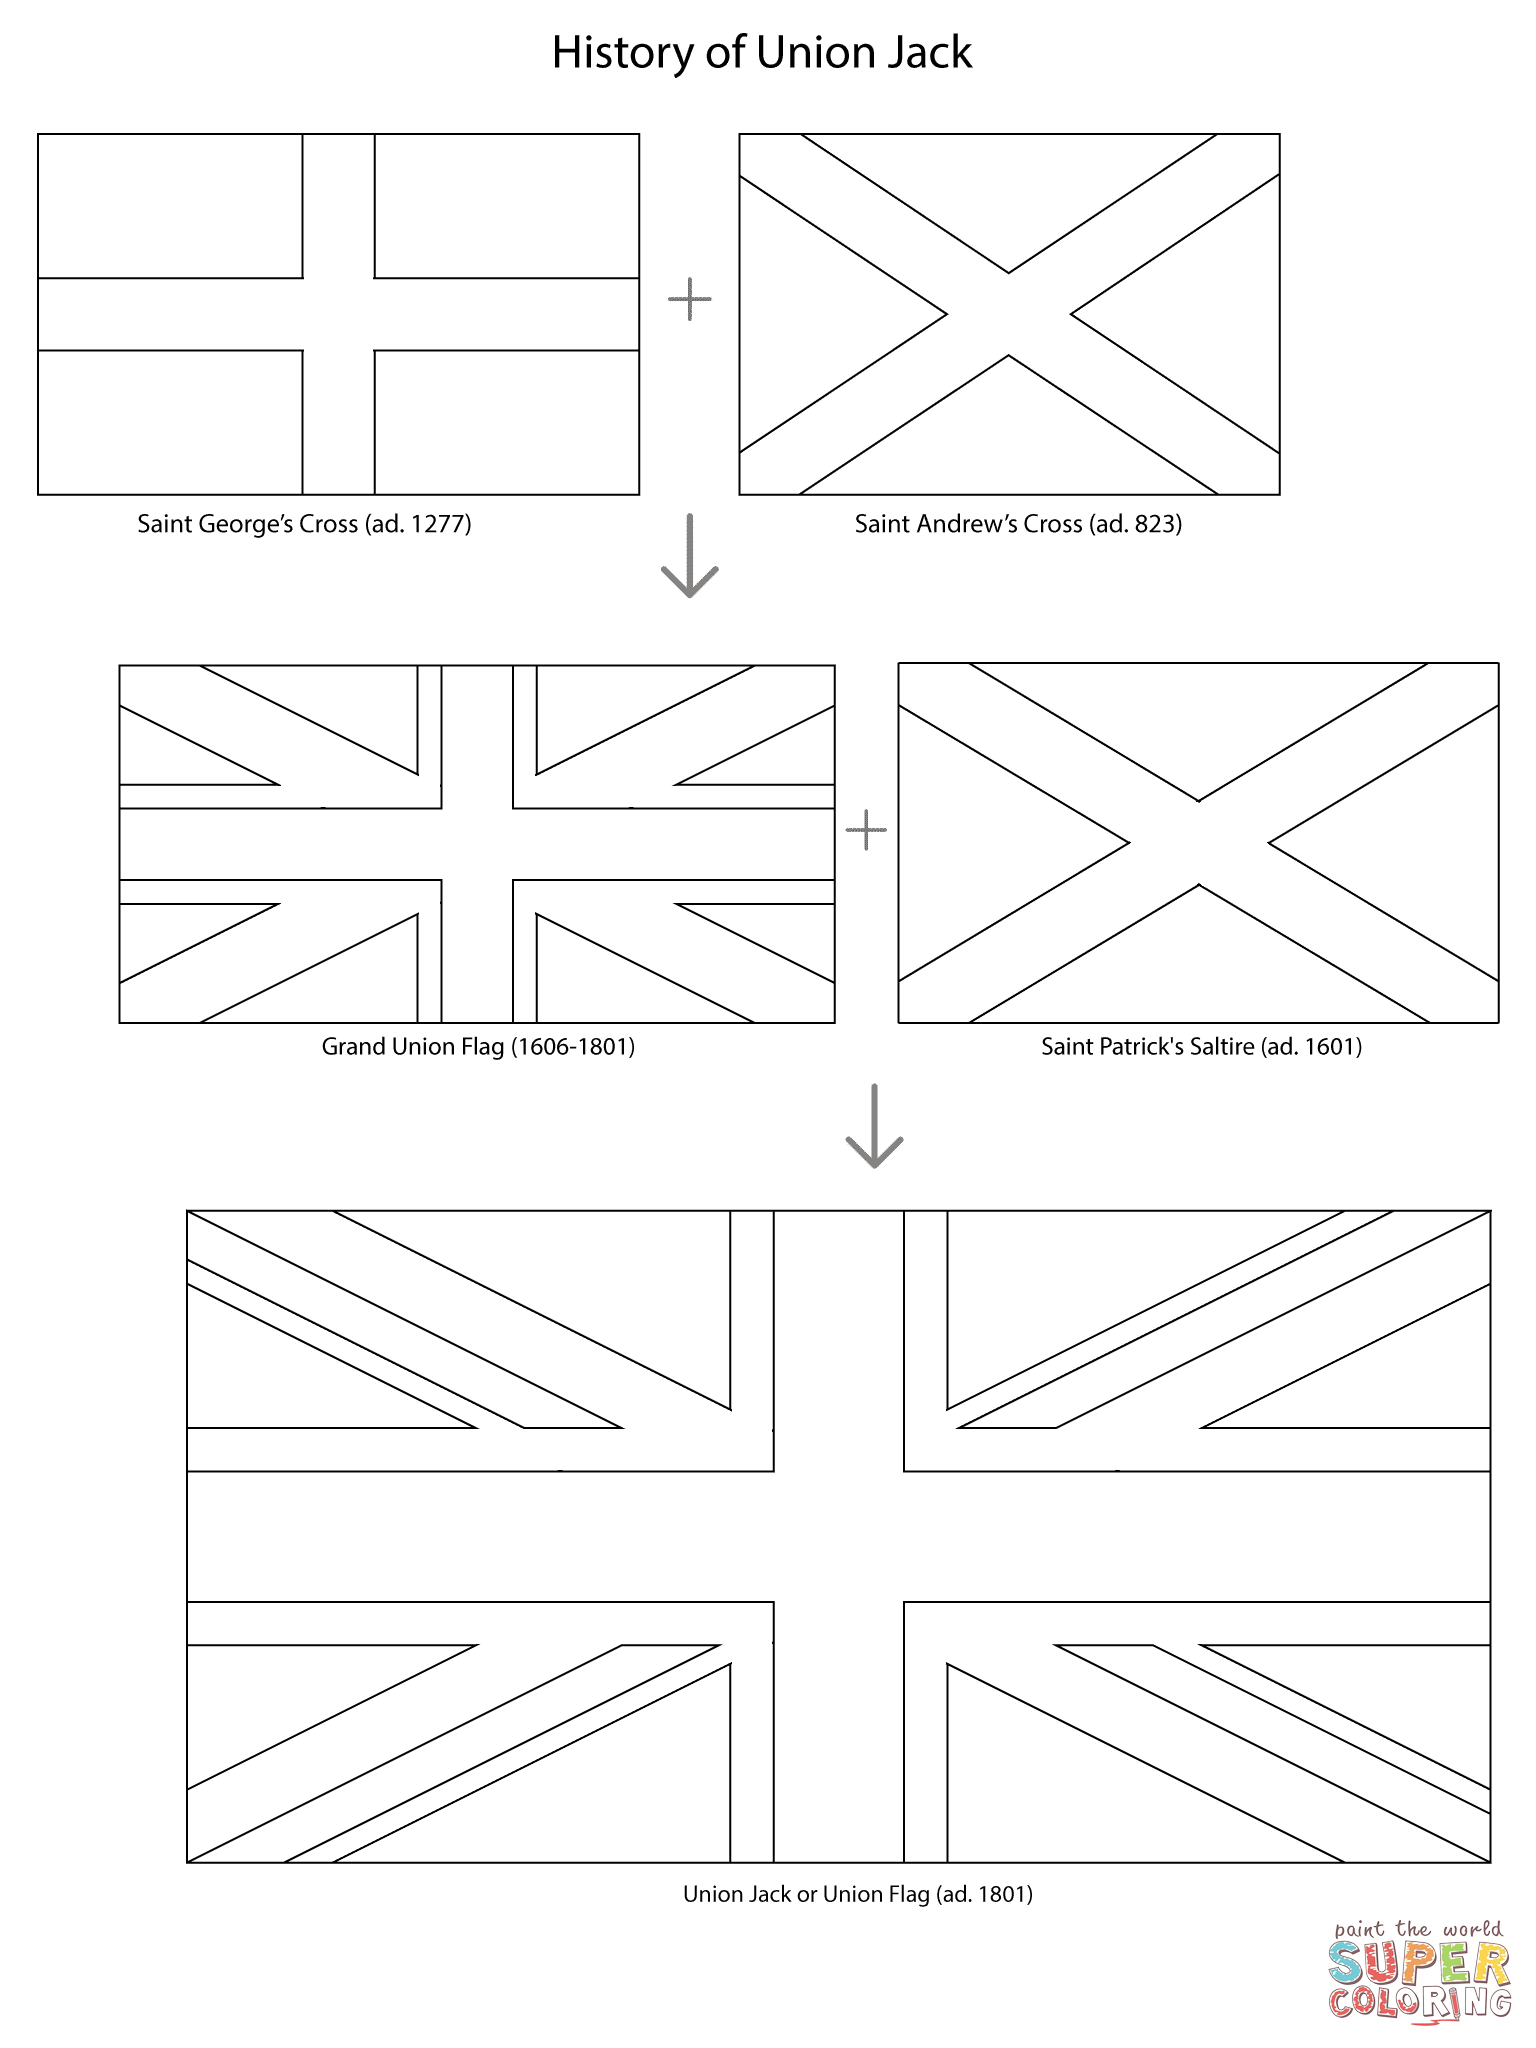 Union Jack History Coloring Page From United Kingdom Category Select From 27007 Printable Crafts Of Cartoon Flag Coloring Pages United Kingdom Flag Union Jack